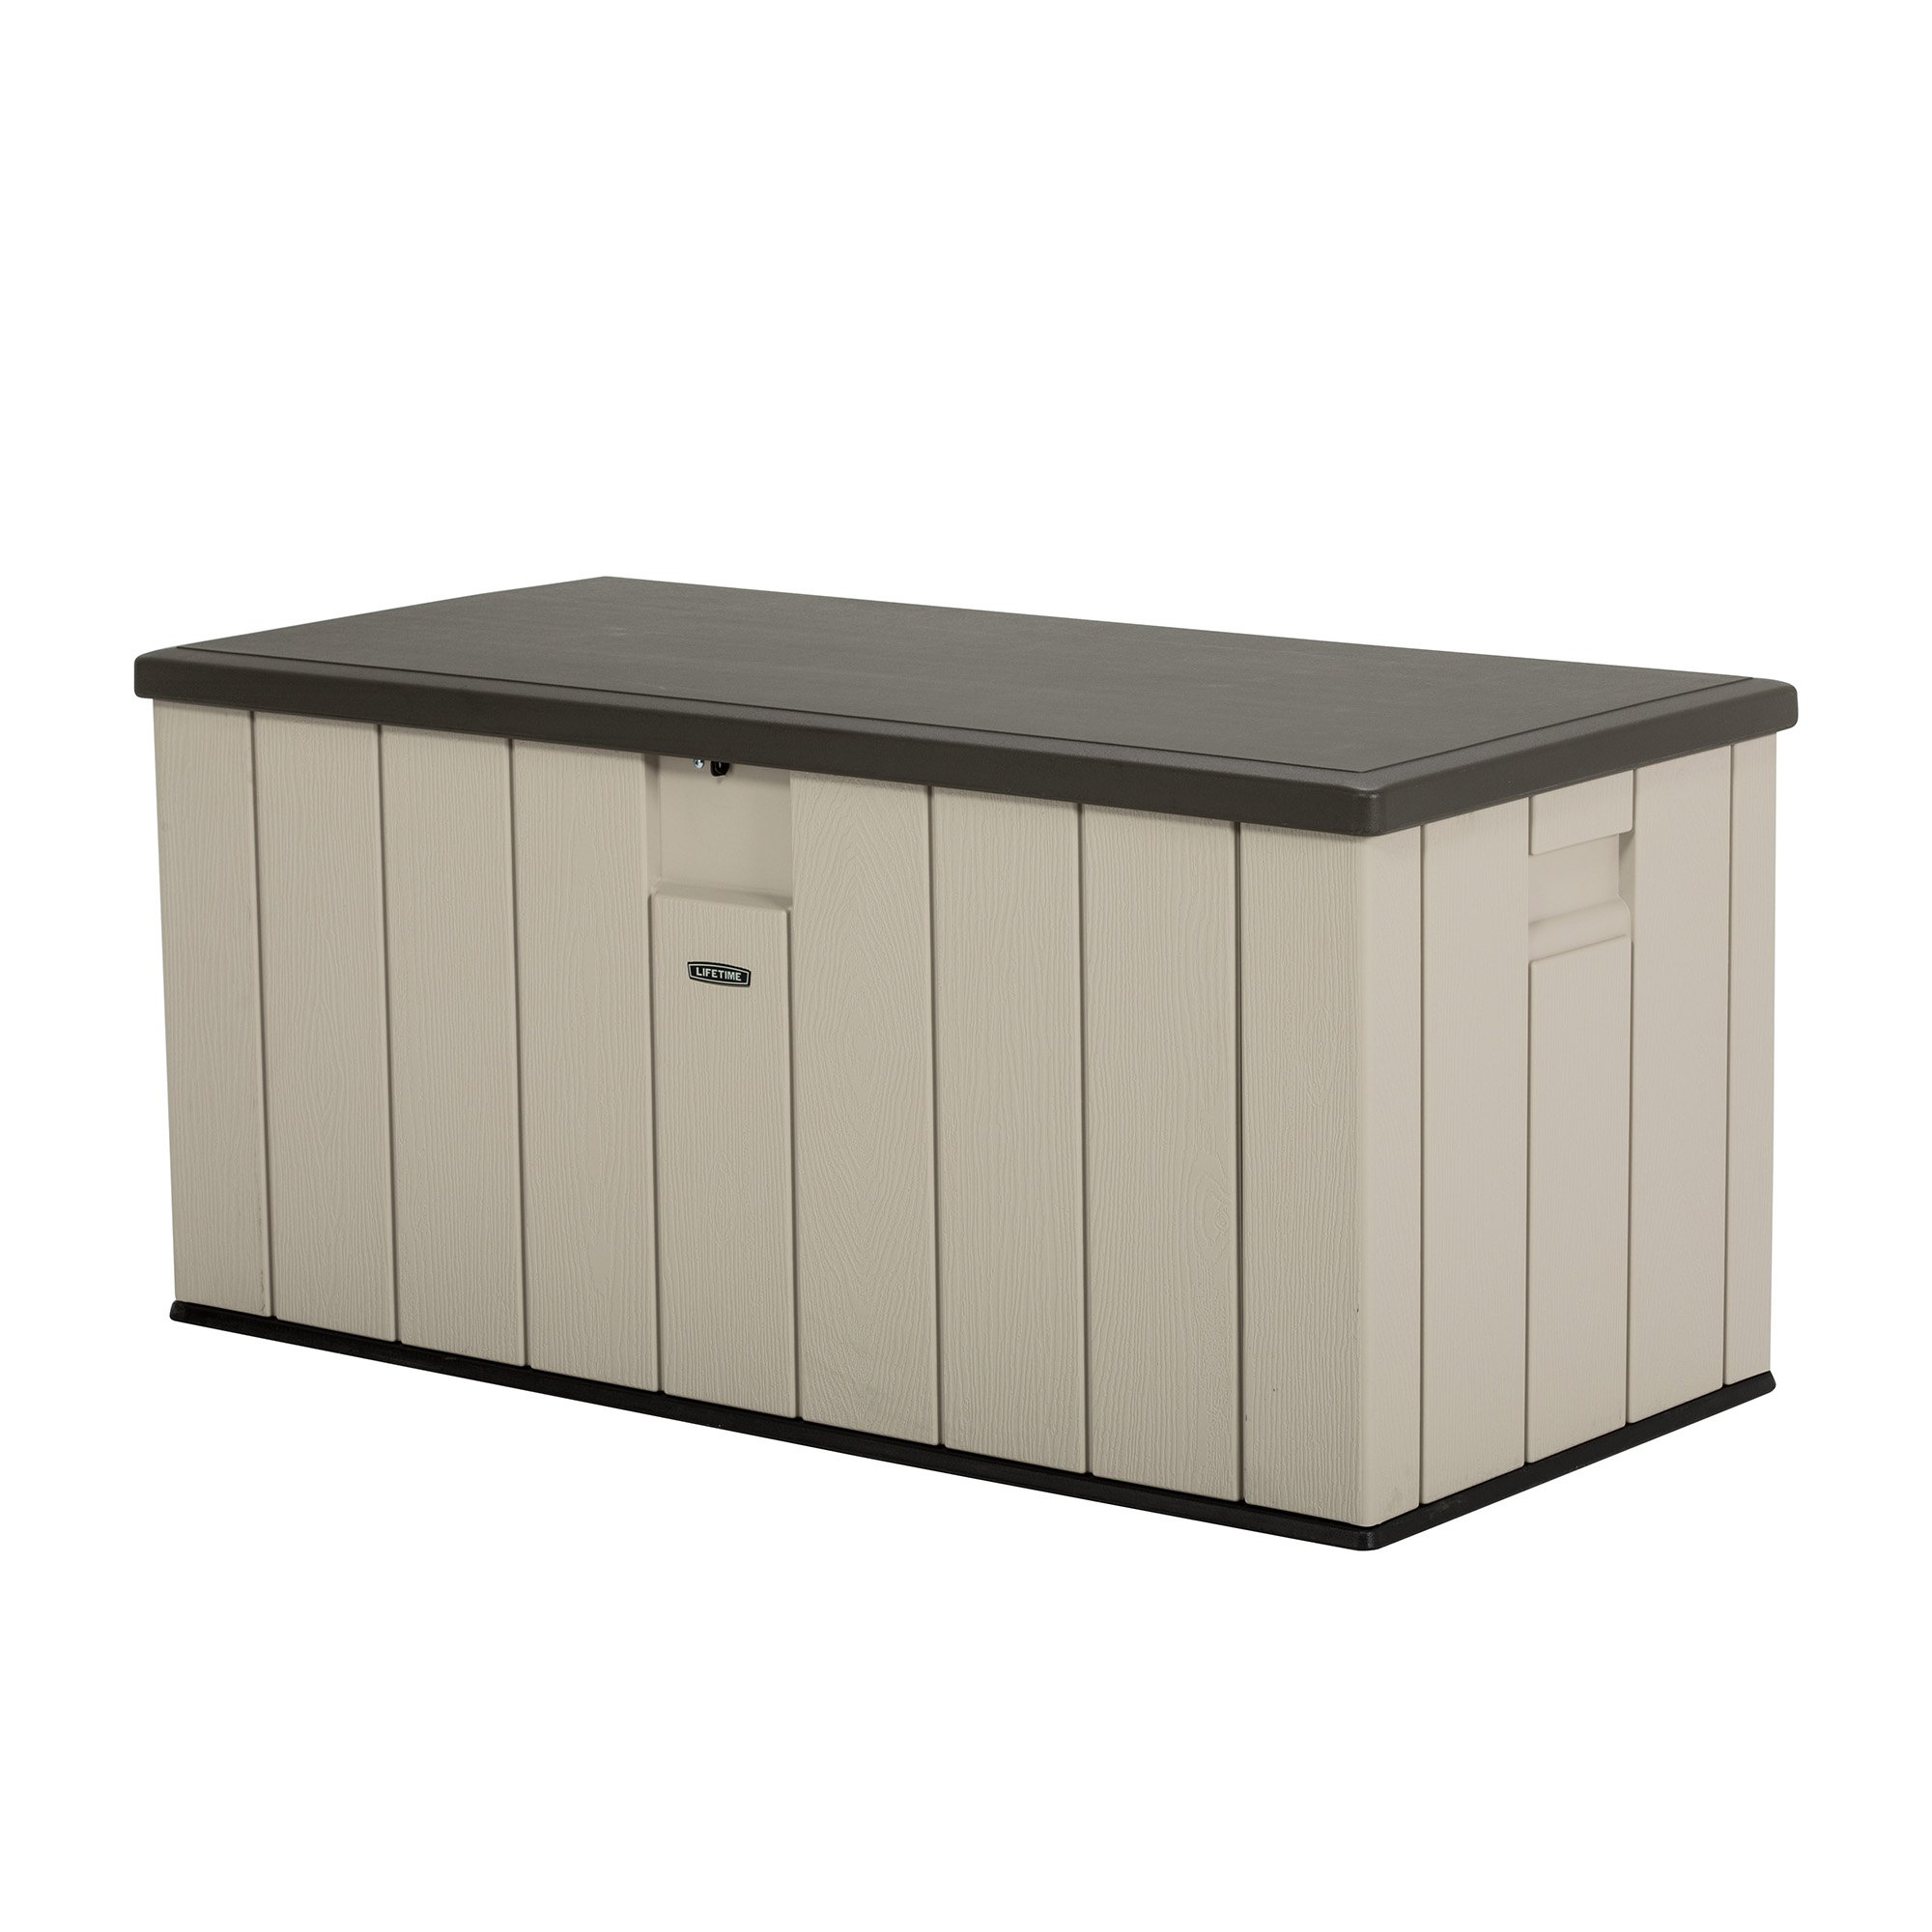 Lifetime 60254 Heavy-Duty Outdoor Storage Deck Box, 150 Gallon, Desert Sand/Brown by Lifetime